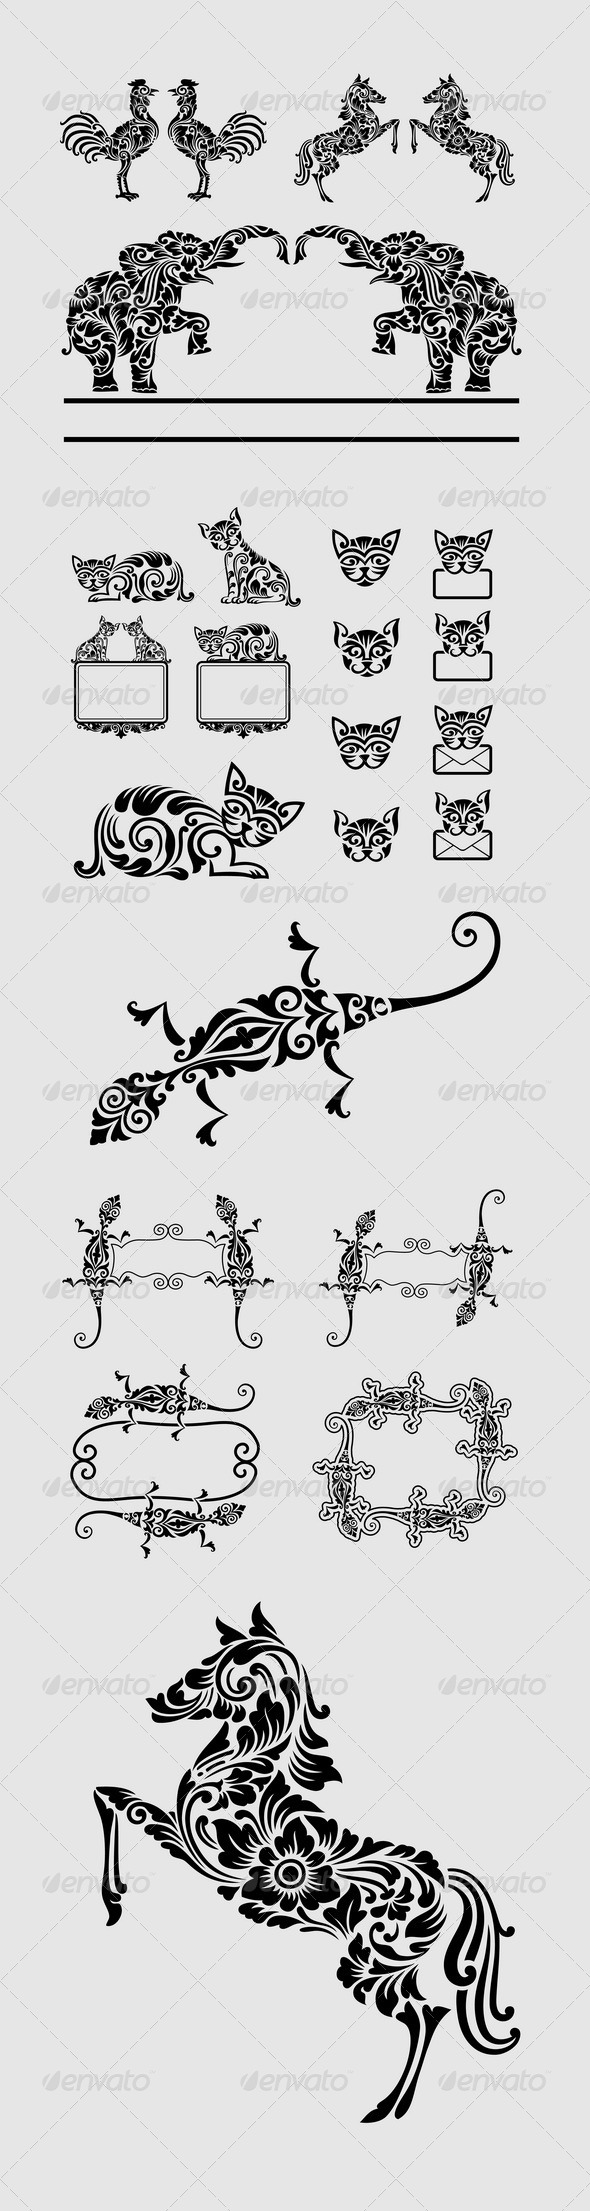 GraphicRiver Animal Floral Ornament Decorations 6883217